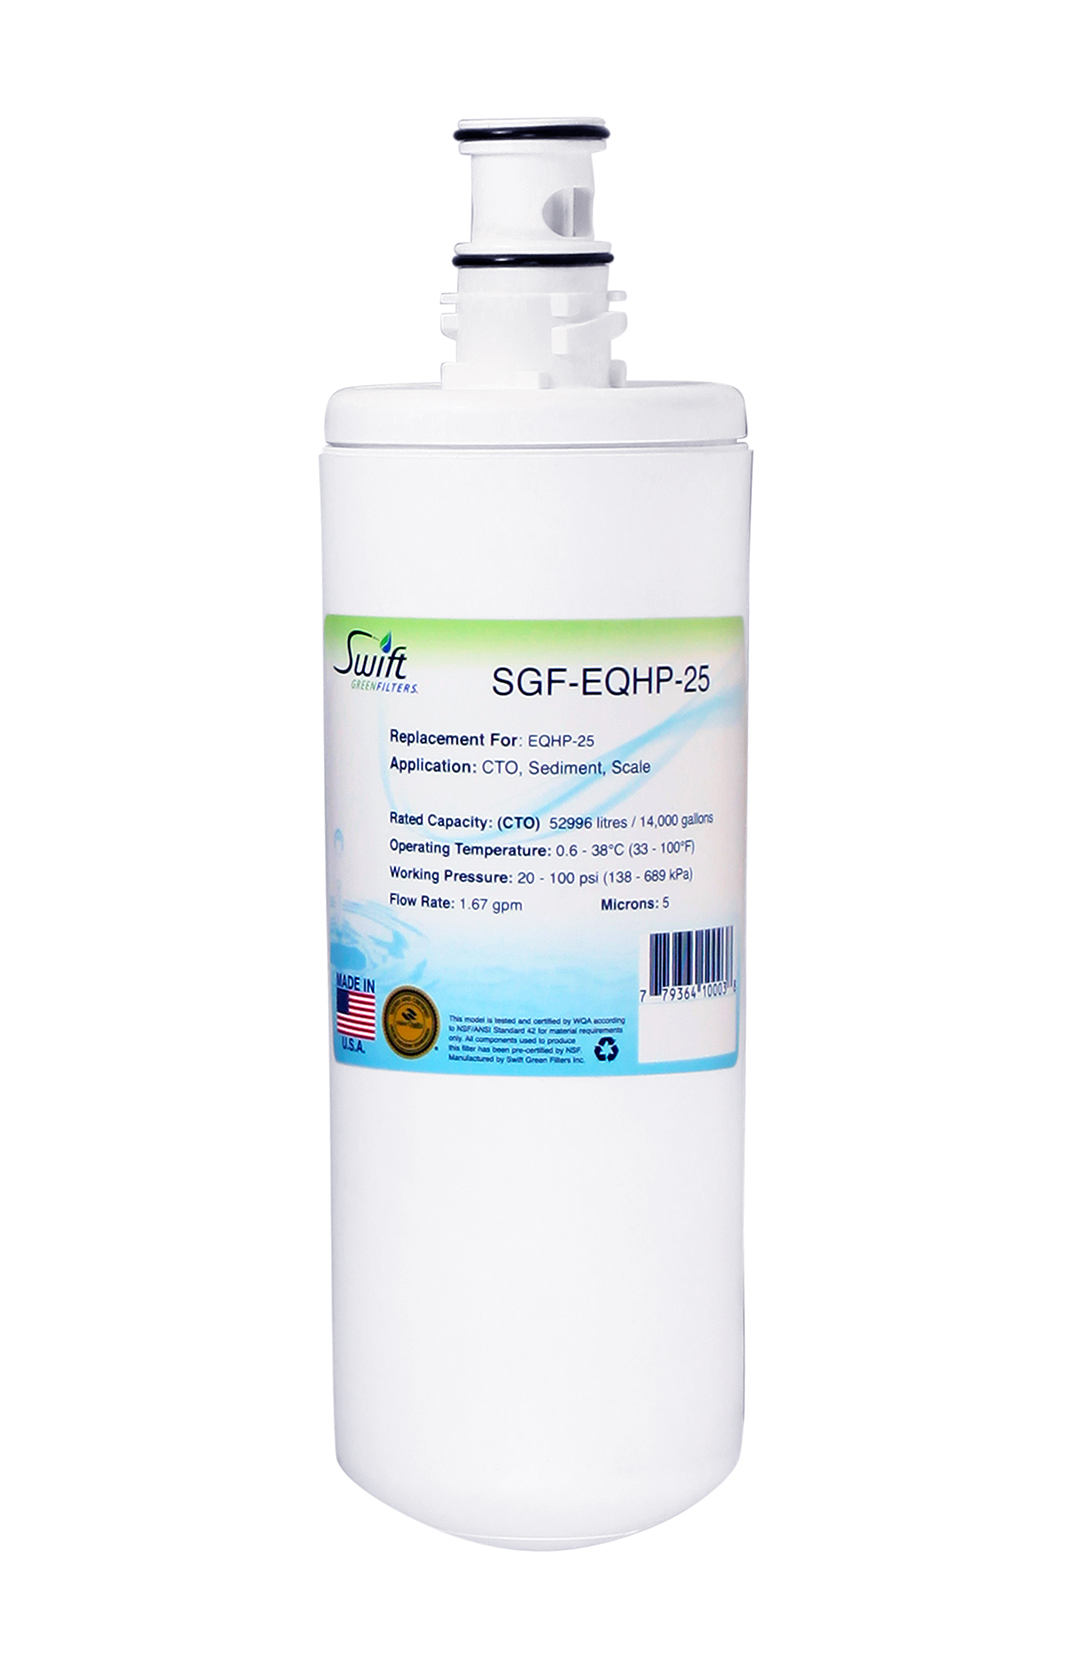 Bunn EQHP-25 Filter Replacement SGF-EQHP-25 by Swift Green Filters